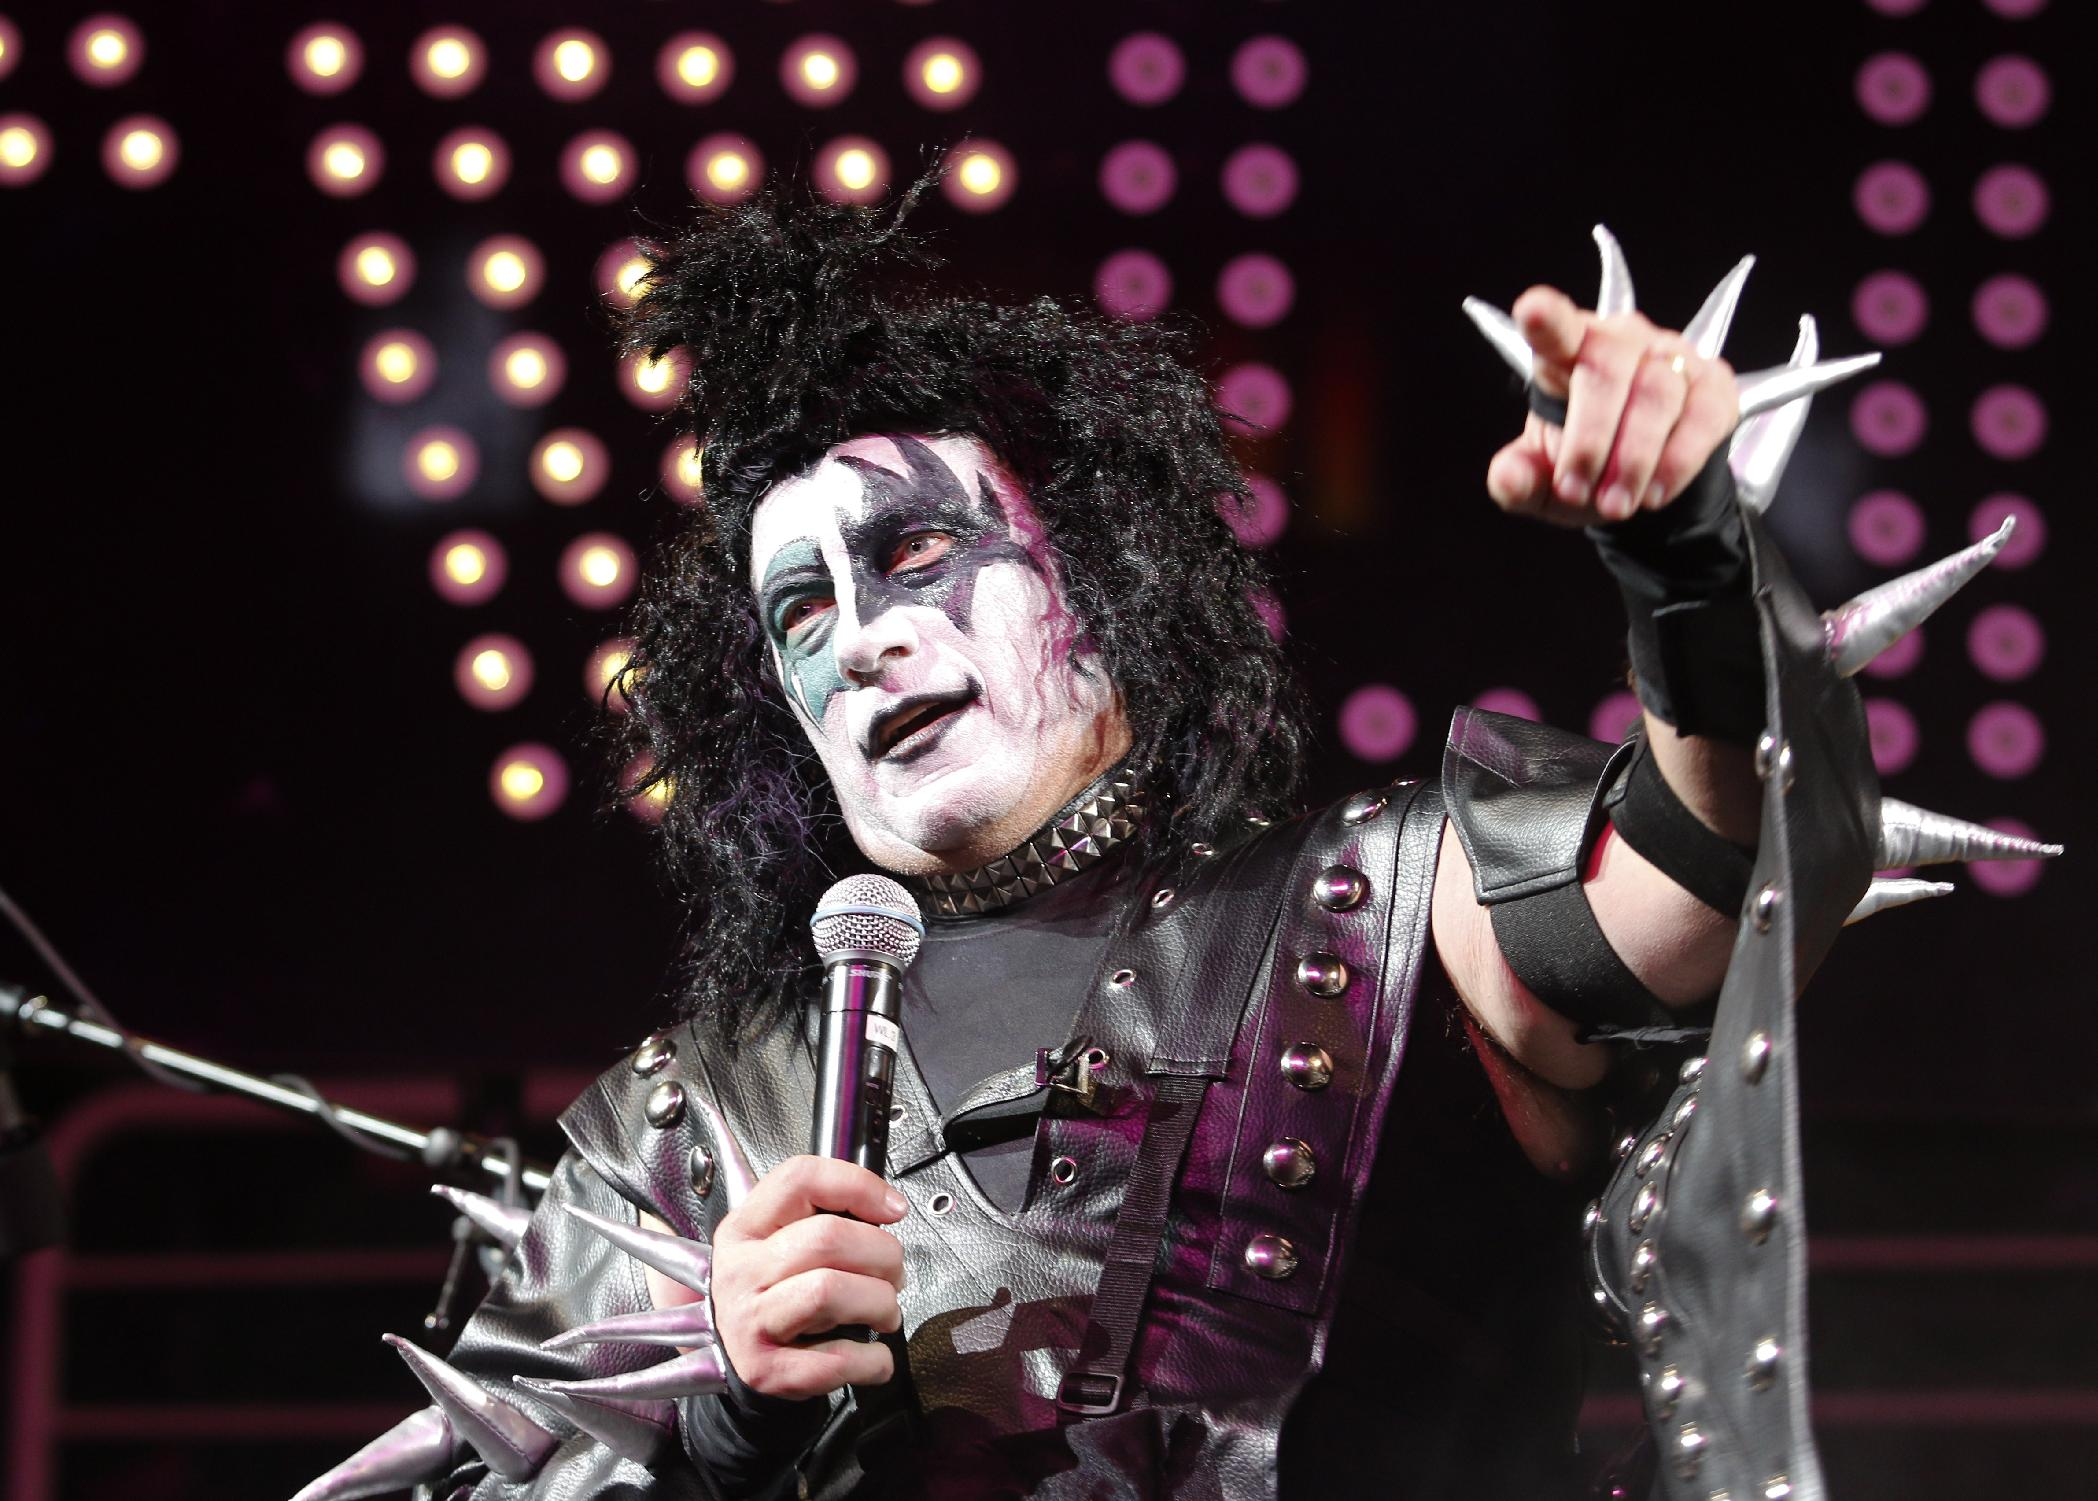 Tom Izzo talks to the crowd while dressed as a member of the band Kiss (AP)